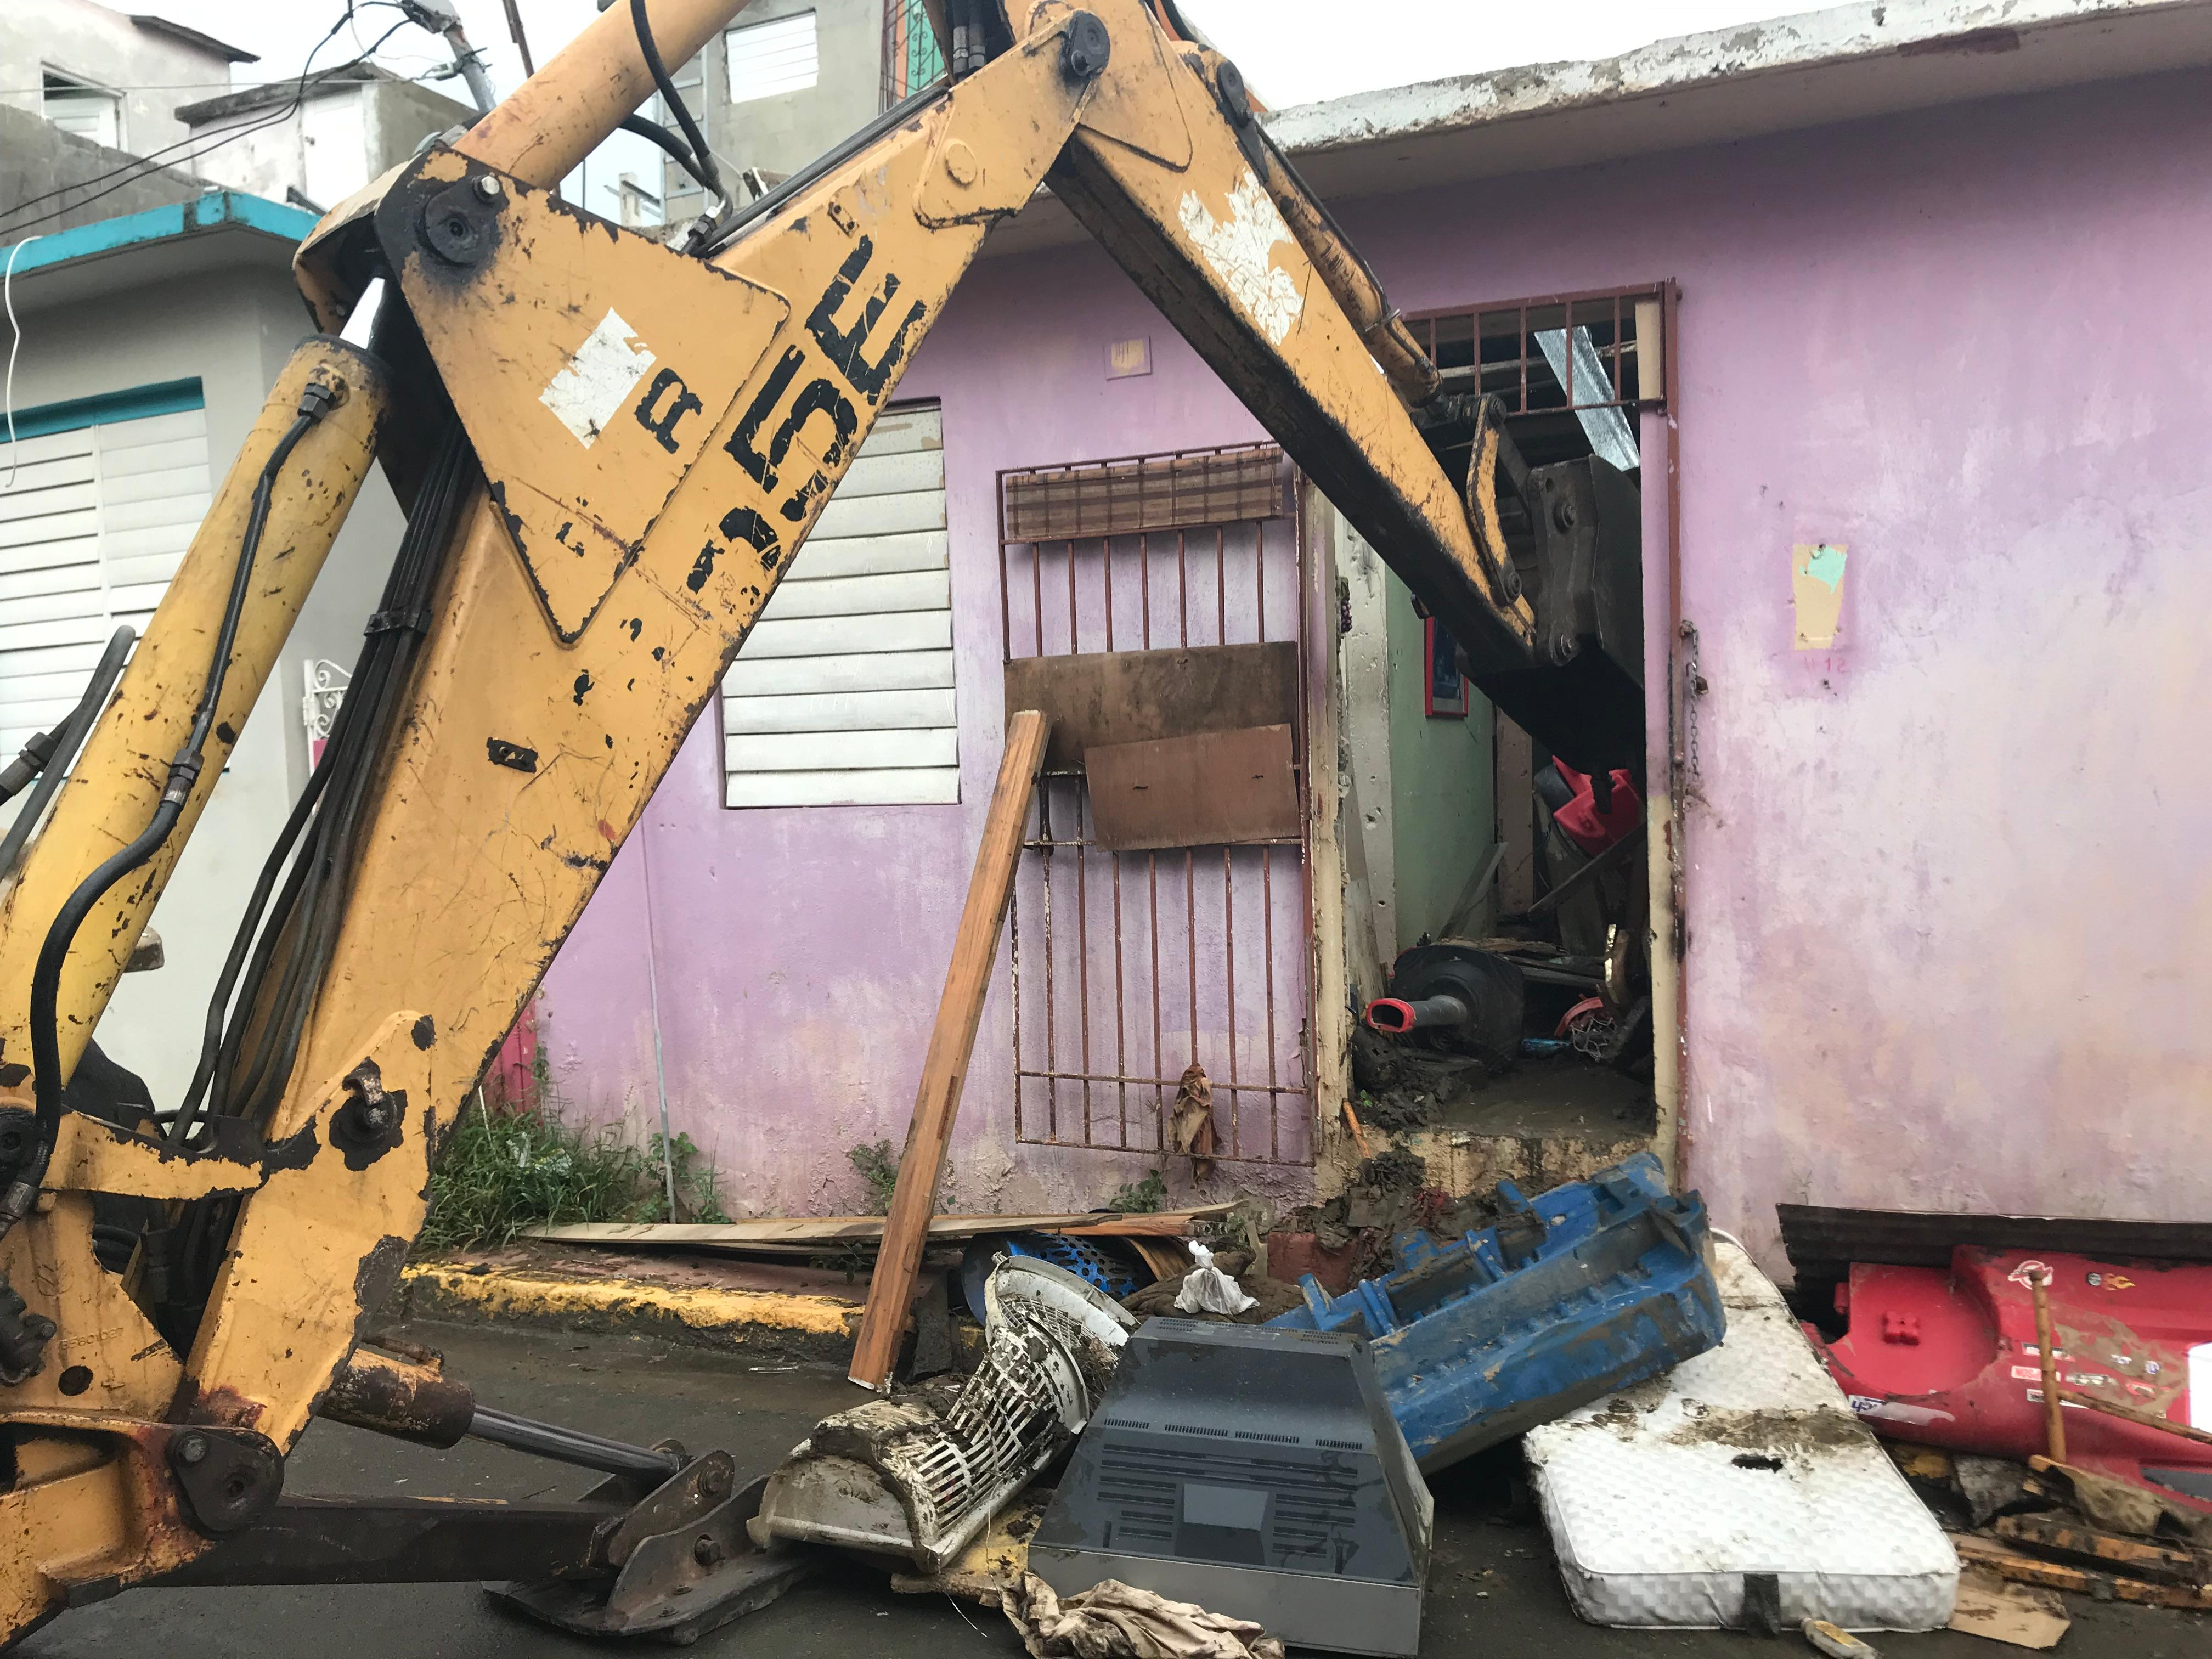 Amilcar Matos-Moreno's group rented a digger and dump truck to not only clean out the homes but also to support the Puerto Rican economy.